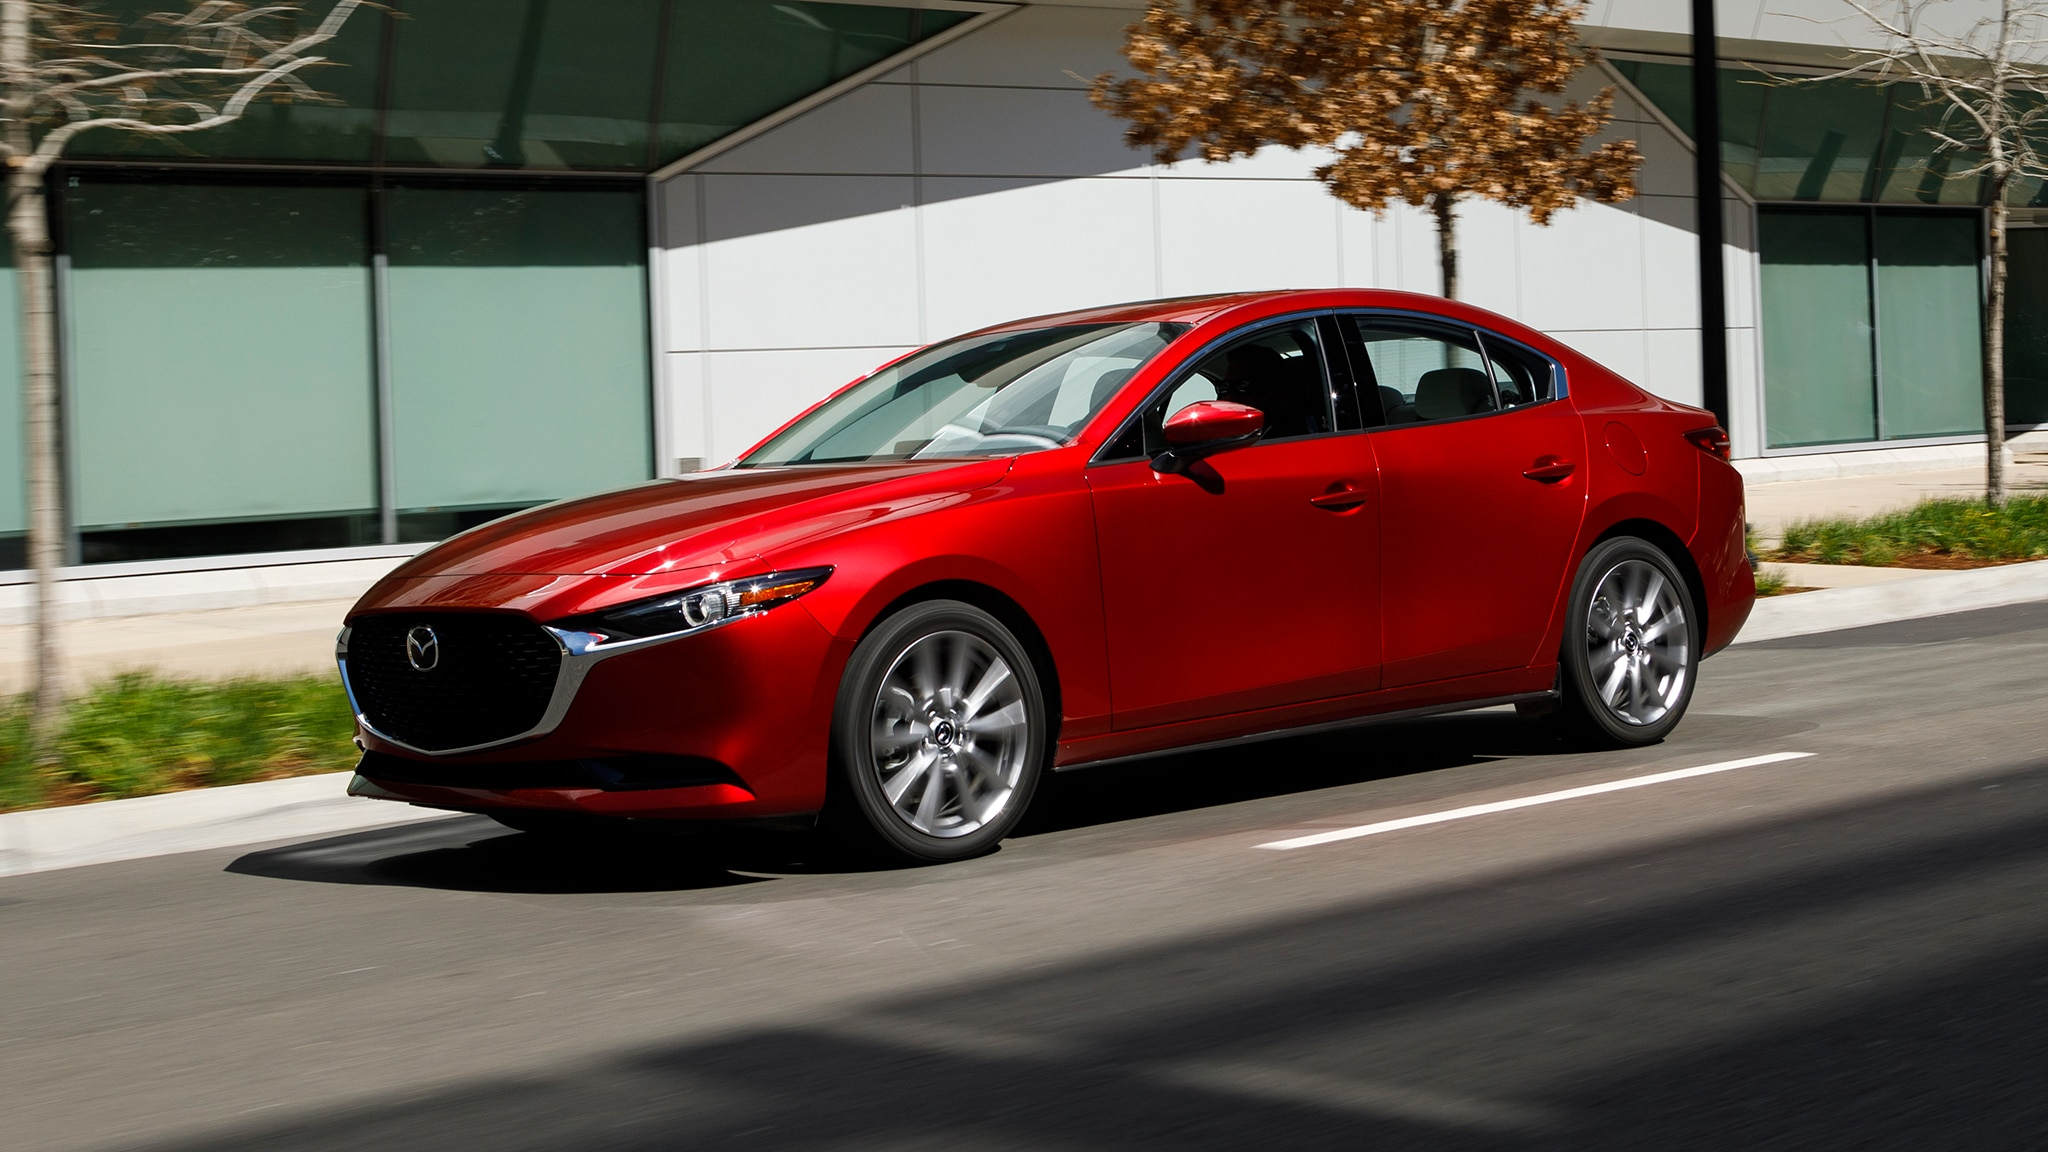 2019 Mazda 3 First Drive Review: Great With AWD, A Hatch